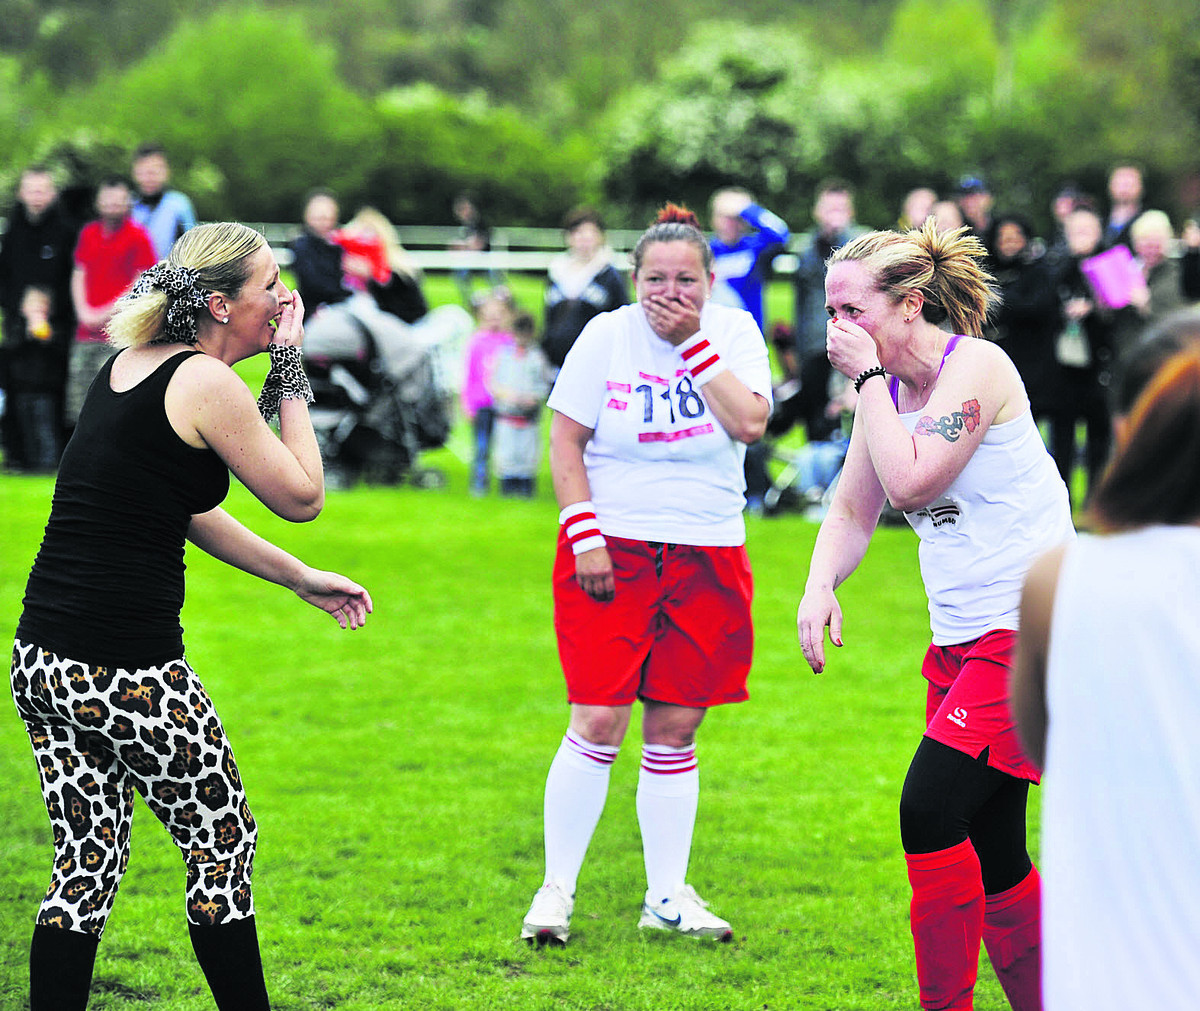 From left,  Leeanne McLelland, Sandra Lygo and Debbie Morris, captain of the 118 team, pictured after Leeanne accidentally kicked Debbie in the face during the fancy dress charity football match